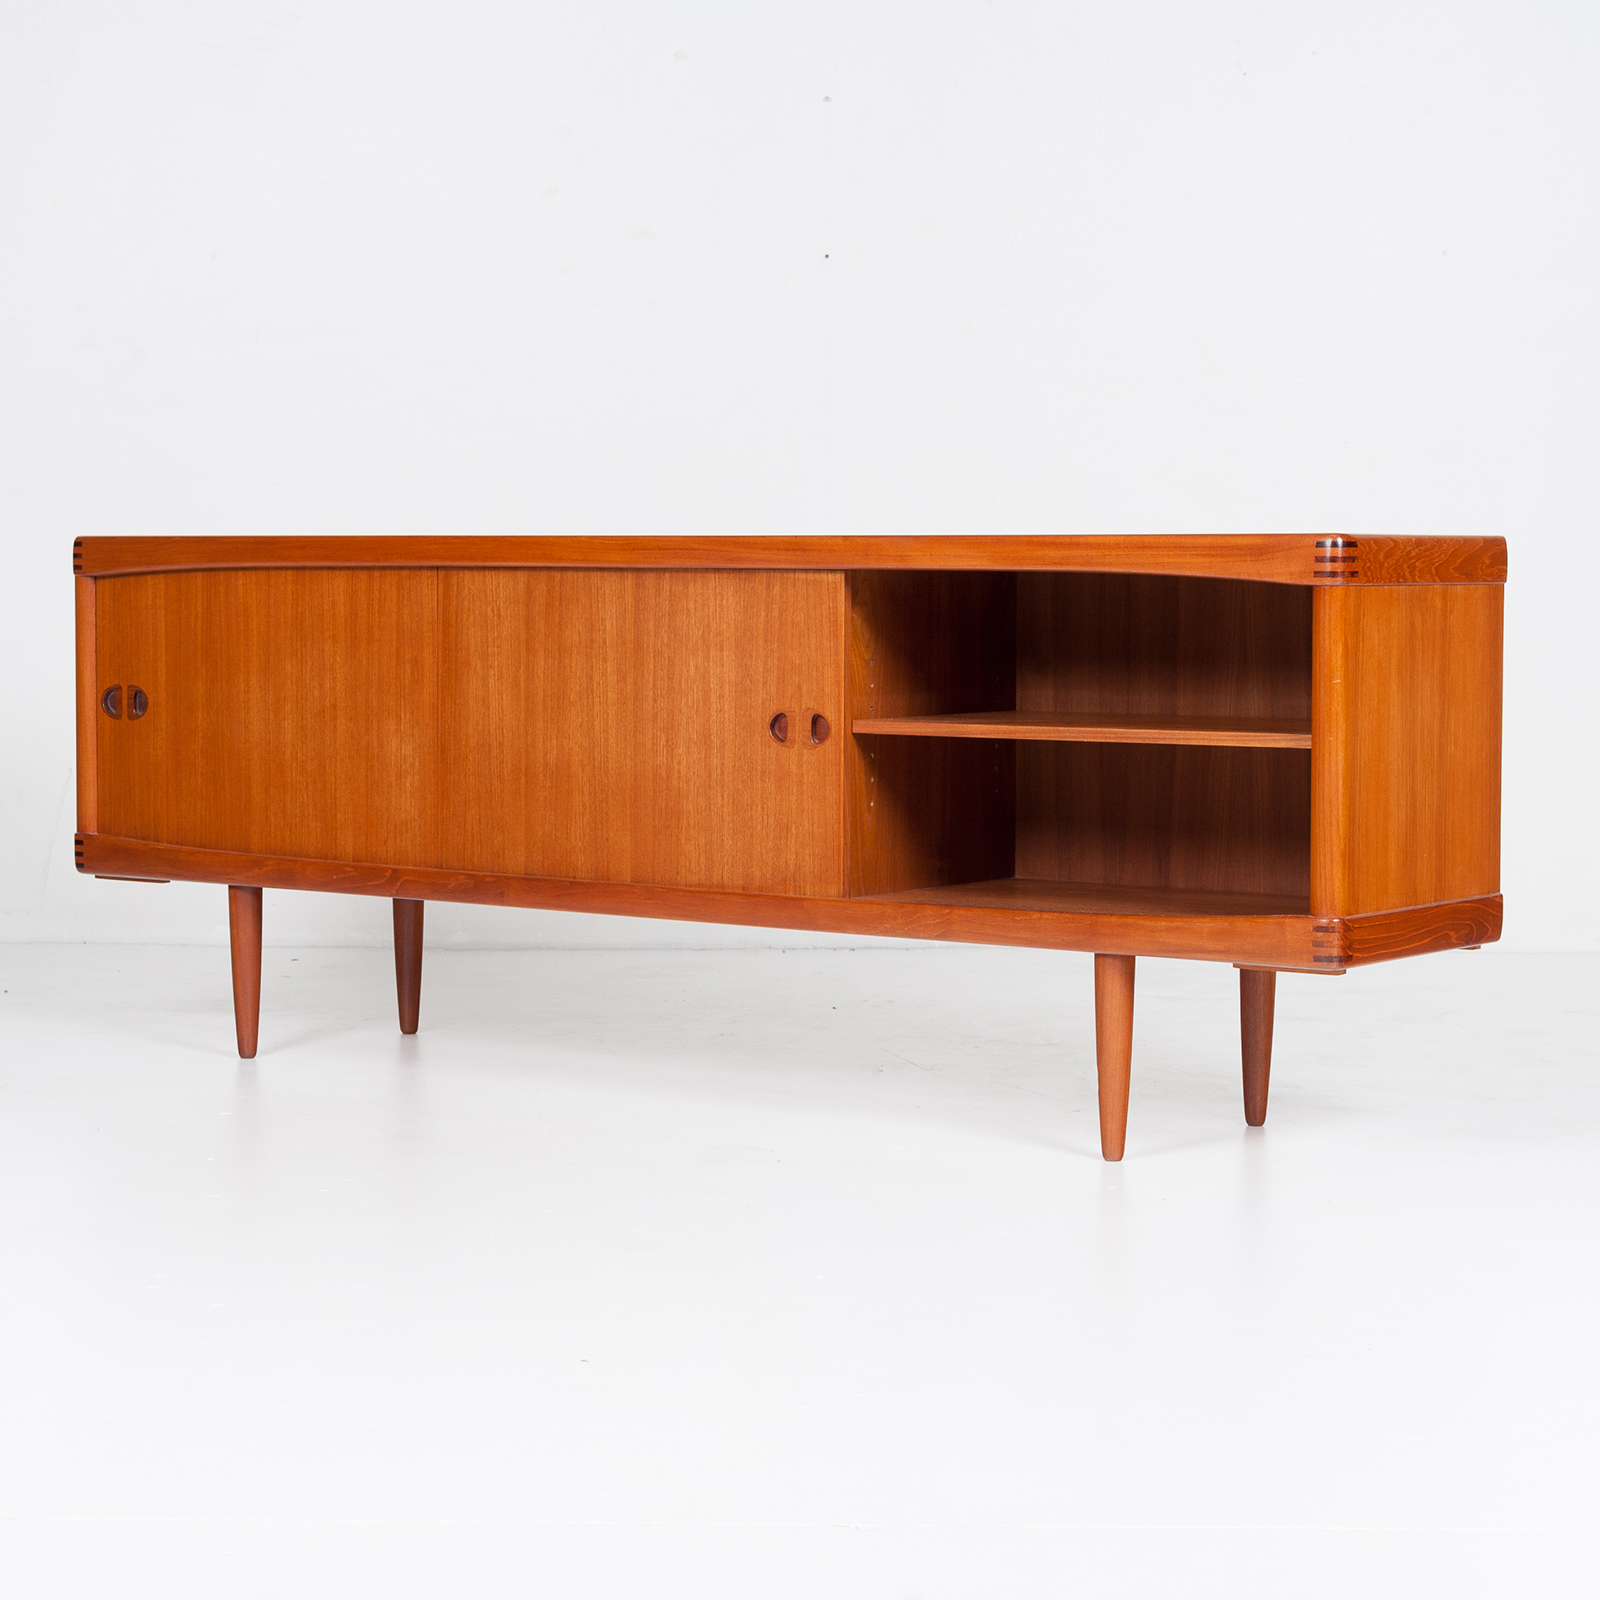 Sideboard By H W Klein In Teak For Bramin, 1960s, Denmark92